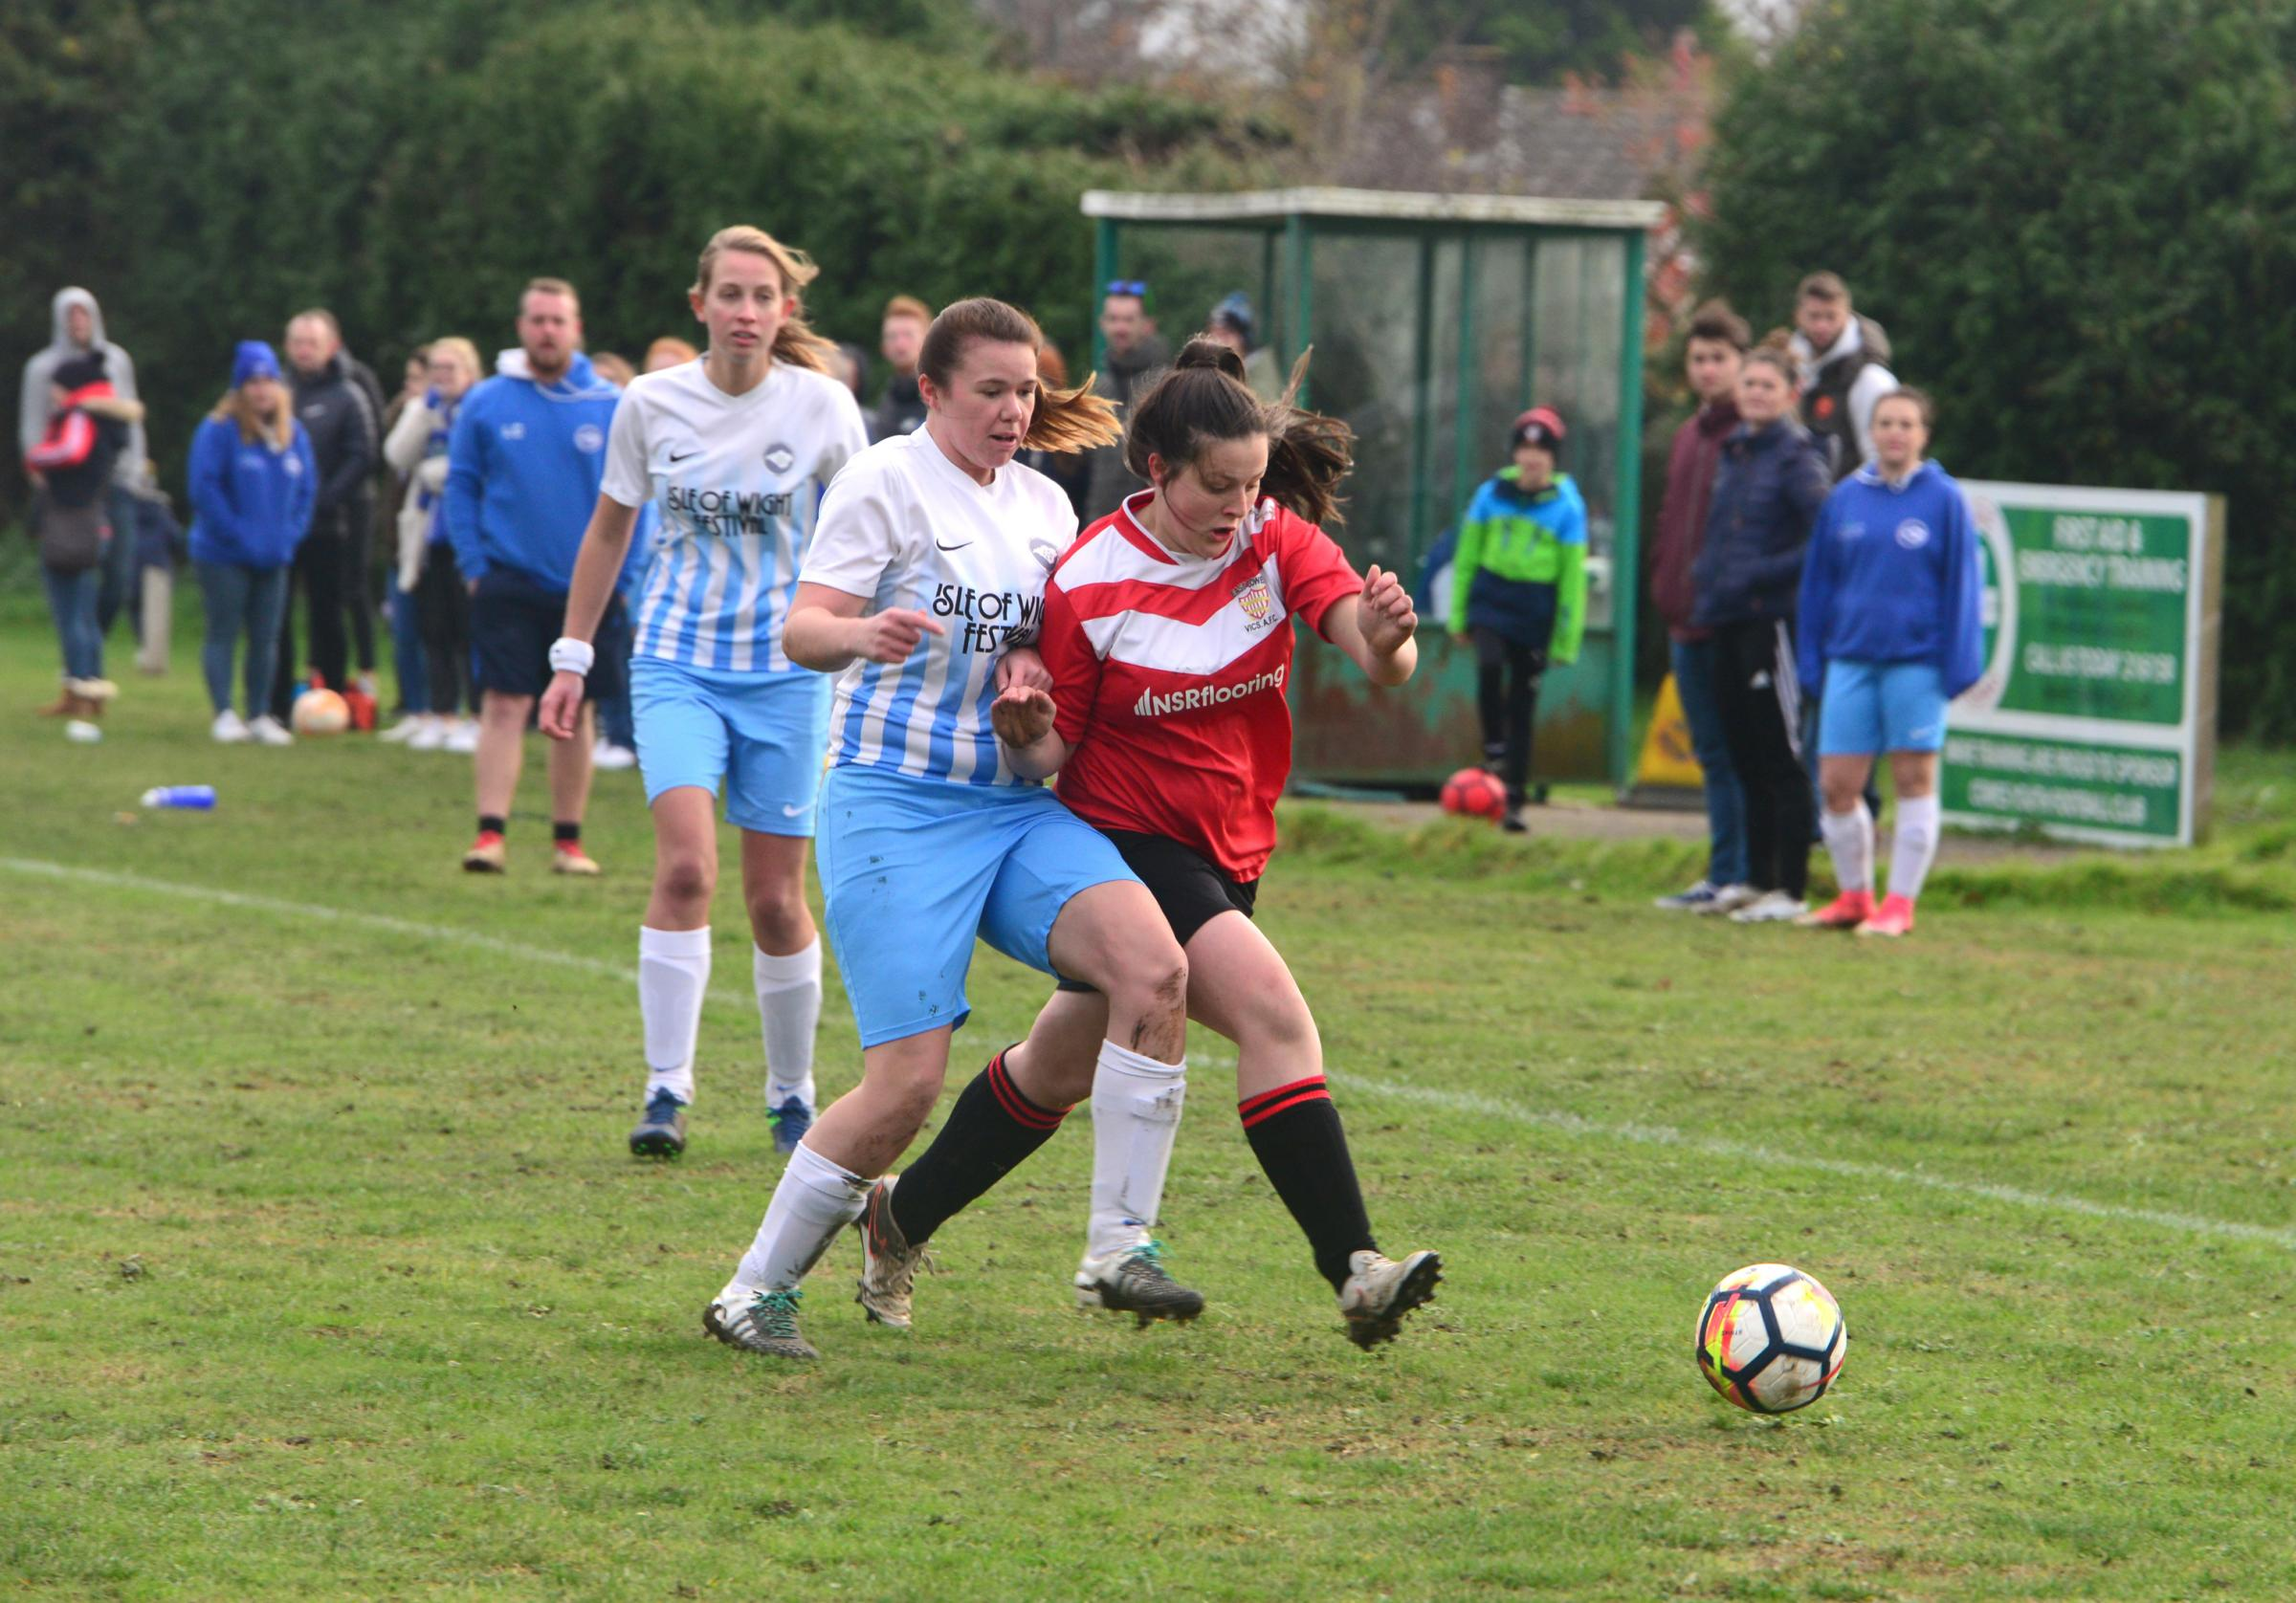 Action between East Cowes Vics Ladies and Cowes Ladies at the Isle of Wight Community Club ground on Sunday.  Photos: Paul Blackley